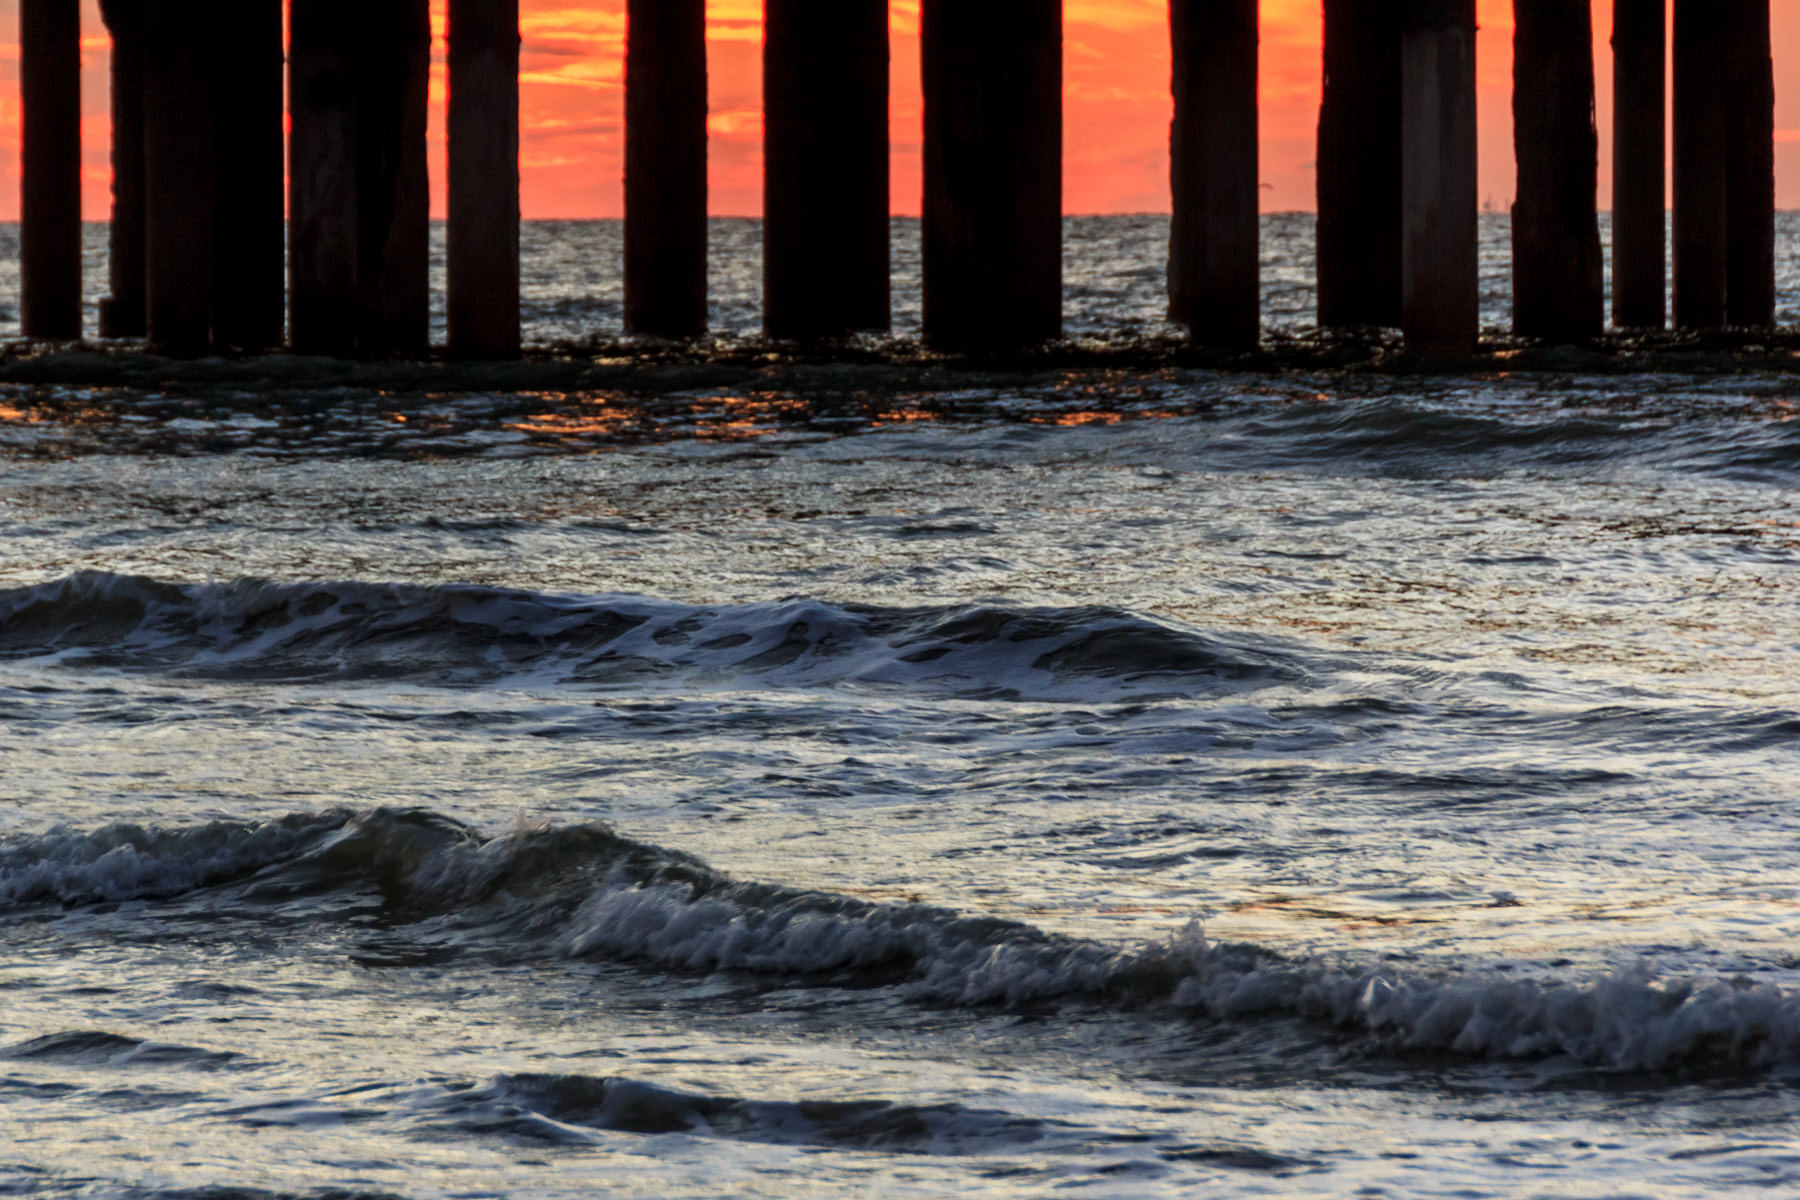 The sun rises over the Gulf of Mexico, silhouetting the supports of Galveston, Texas' Pleasure Pier.